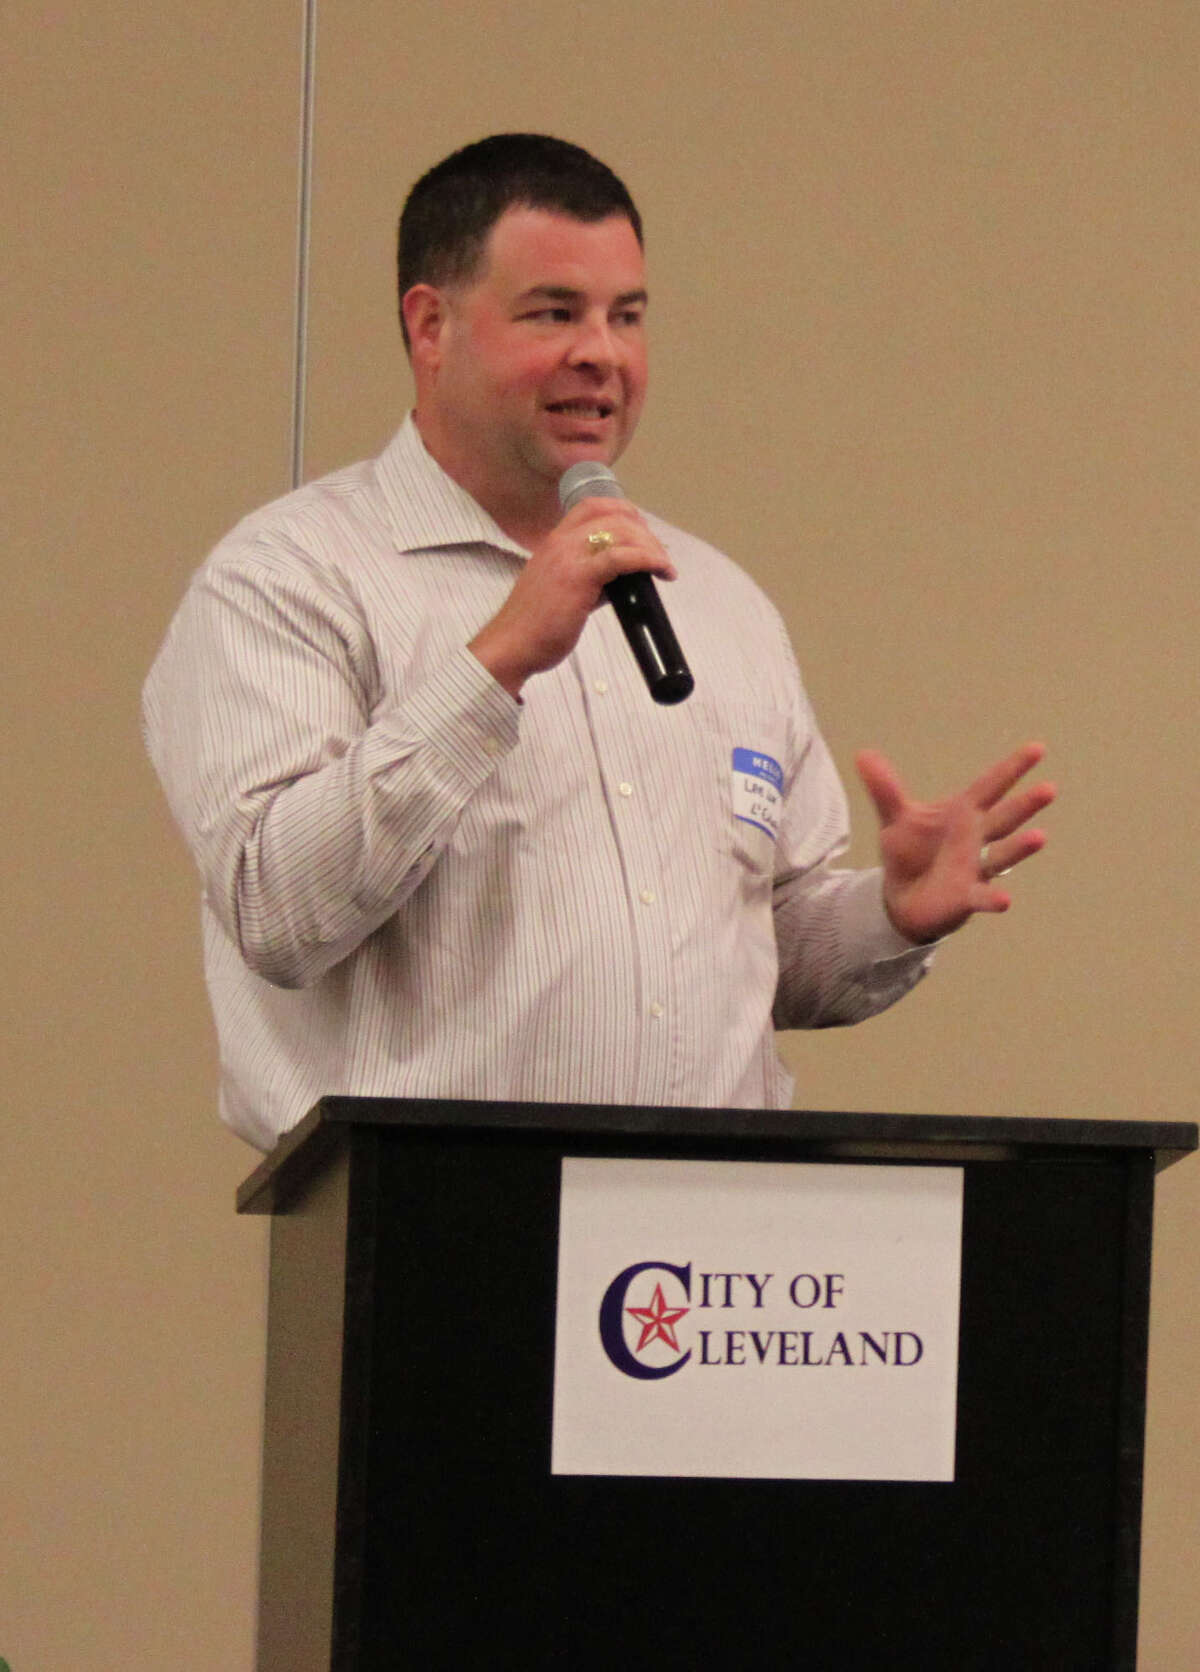 Levi Love of L Squared Engineering discusses two construction projects for the City of Cleveland.